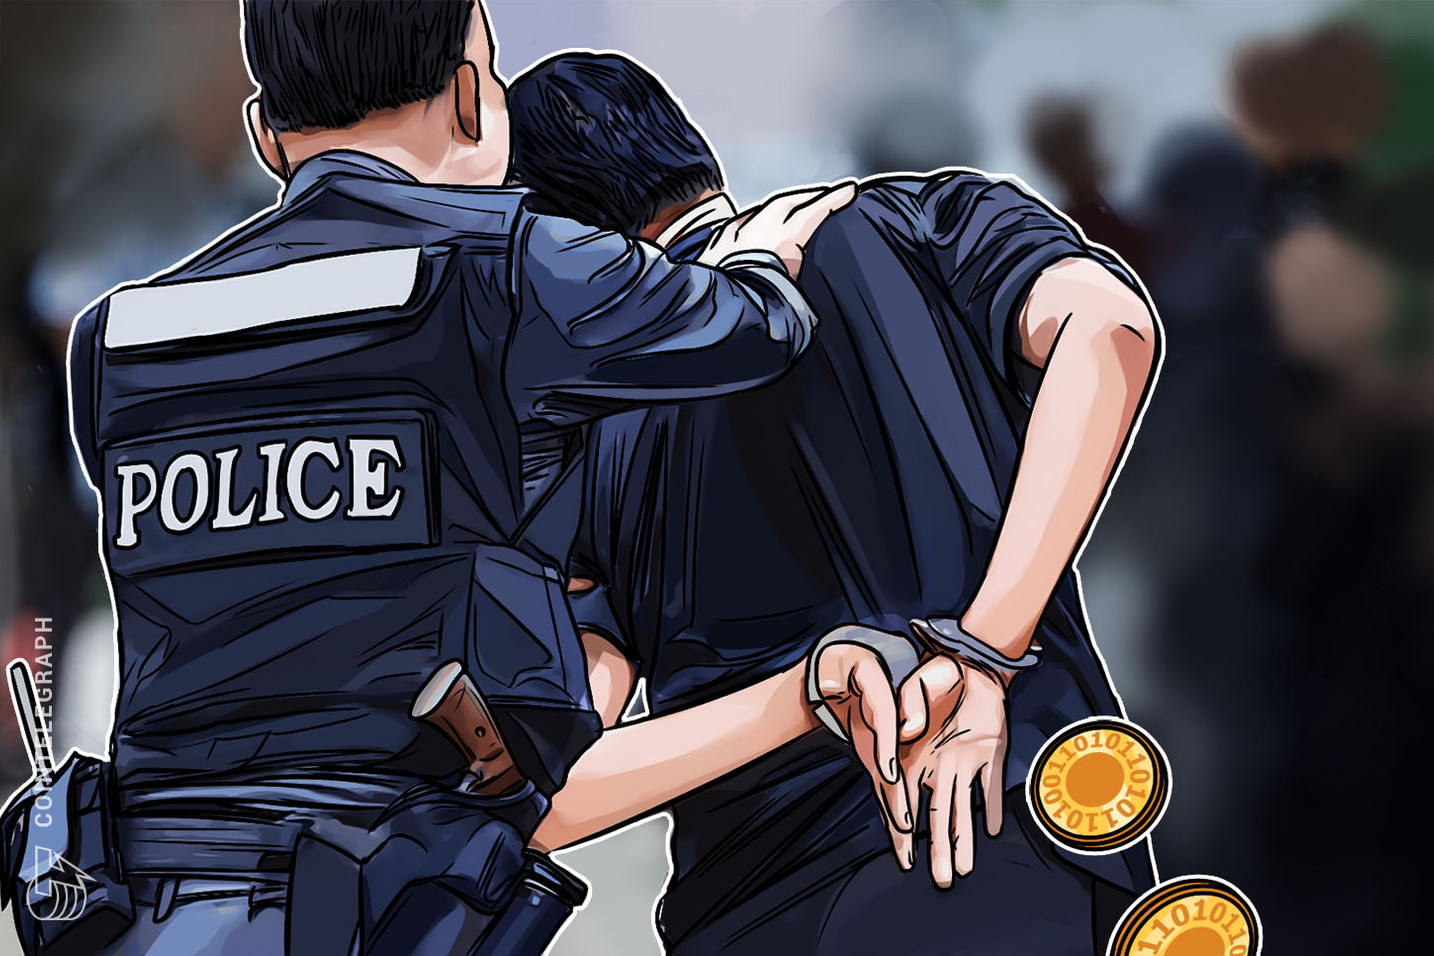 South Korea Arrests 14 On Suspicion Of Discount Bitcoin Mining